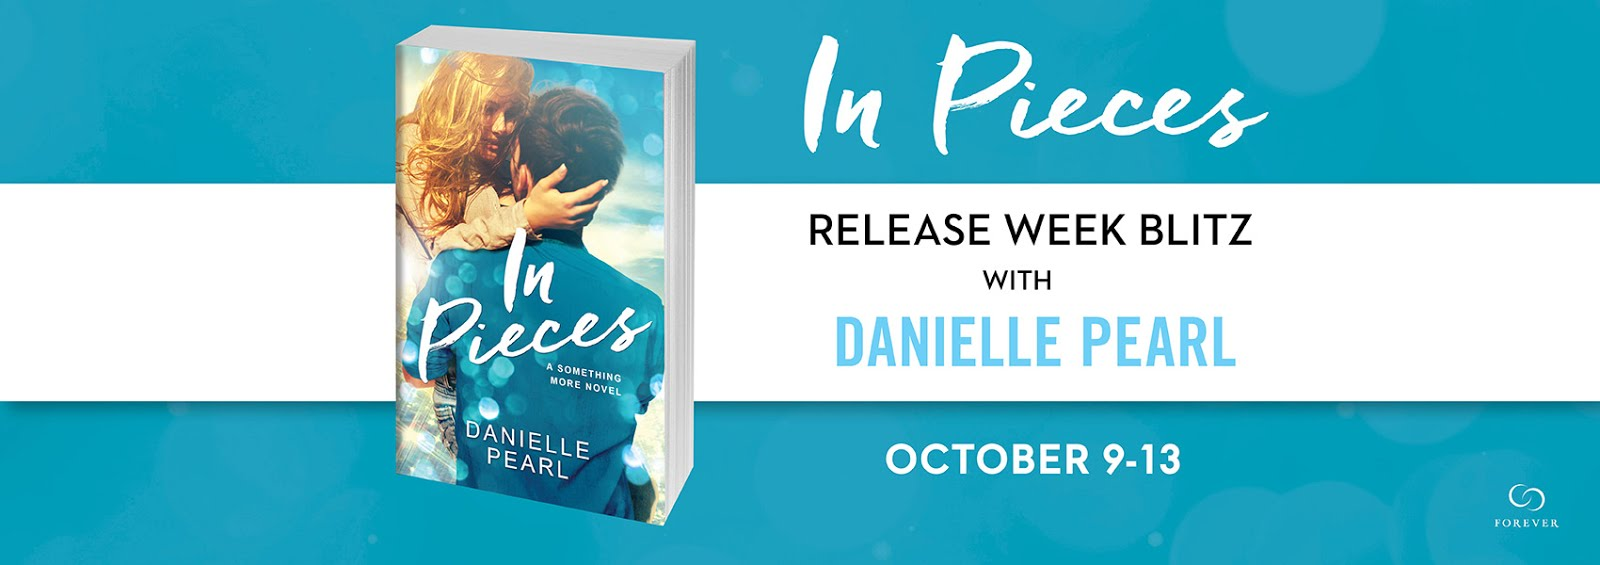 In Pieces Release Week Blitz